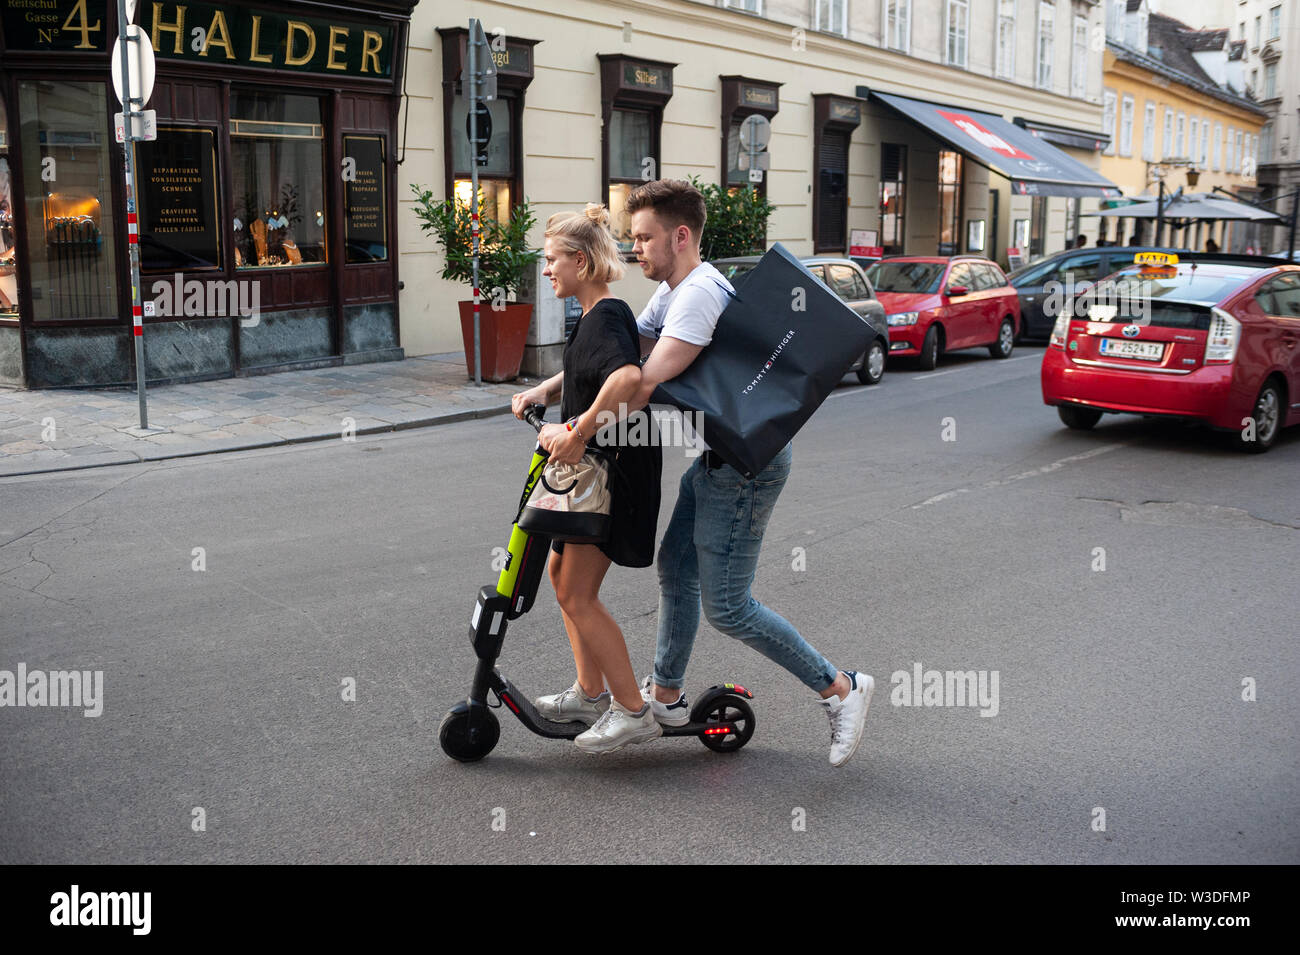 Woman Rides A Scooter Stock Photos & Woman Rides A Scooter